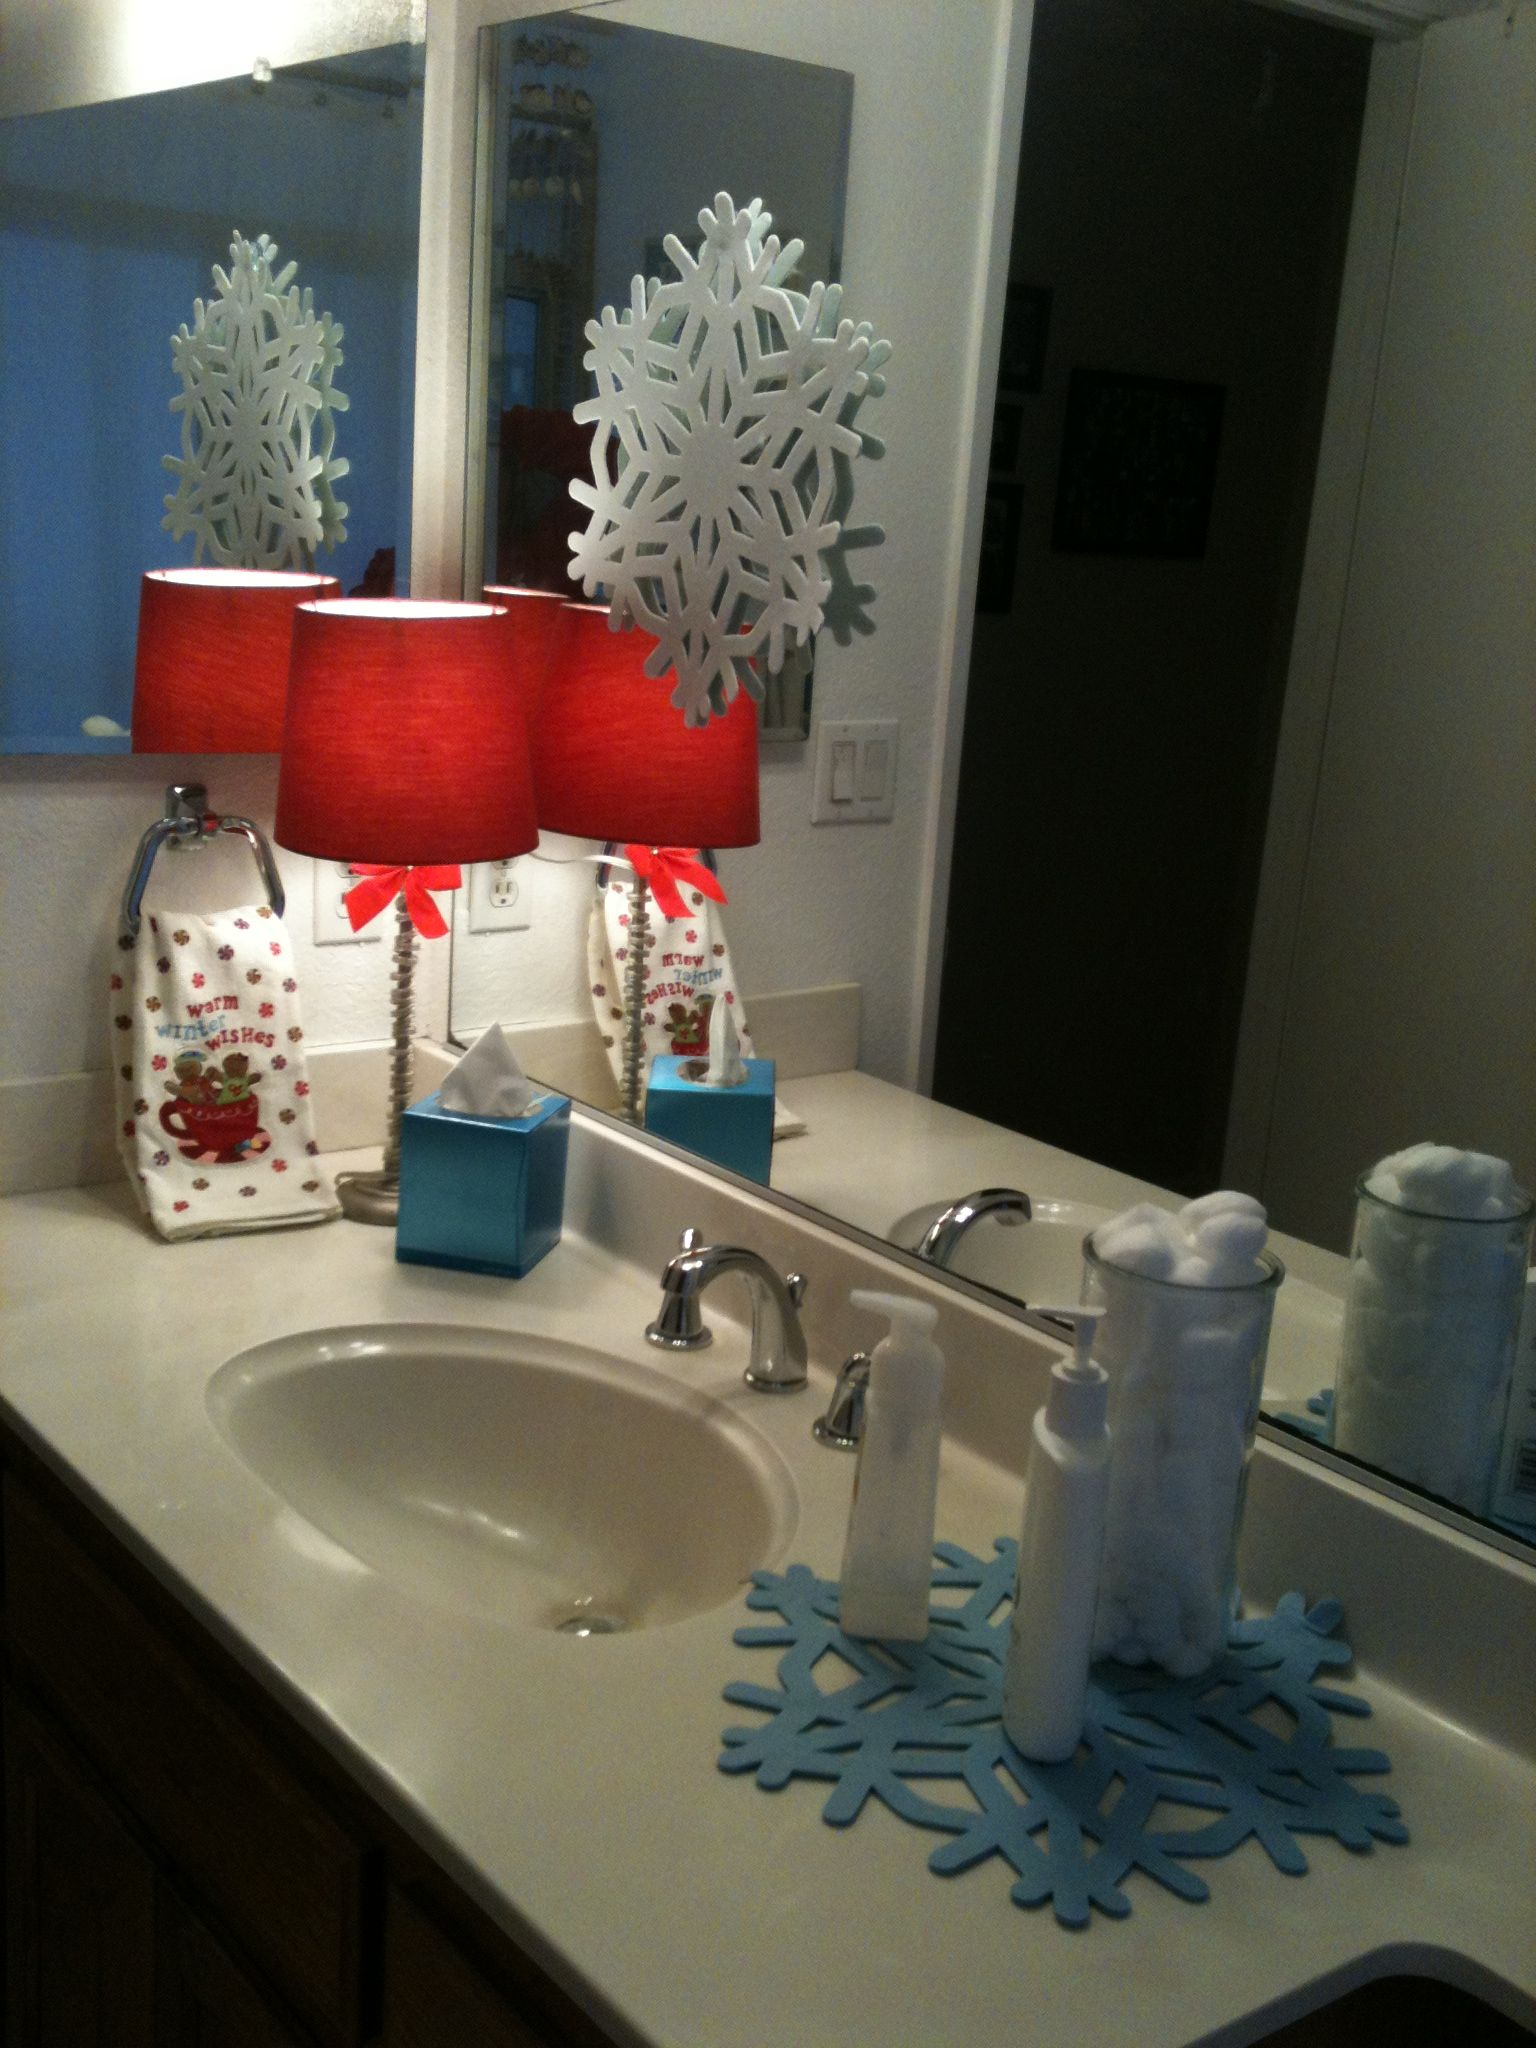 Holiday bathroom decorating ideas - Check Out 20 Amazing Christmas Bathroom Decoration Ideas Christmas Bathroom Seats Which Are Incredible And Really Creative For Winter Season And Christmas